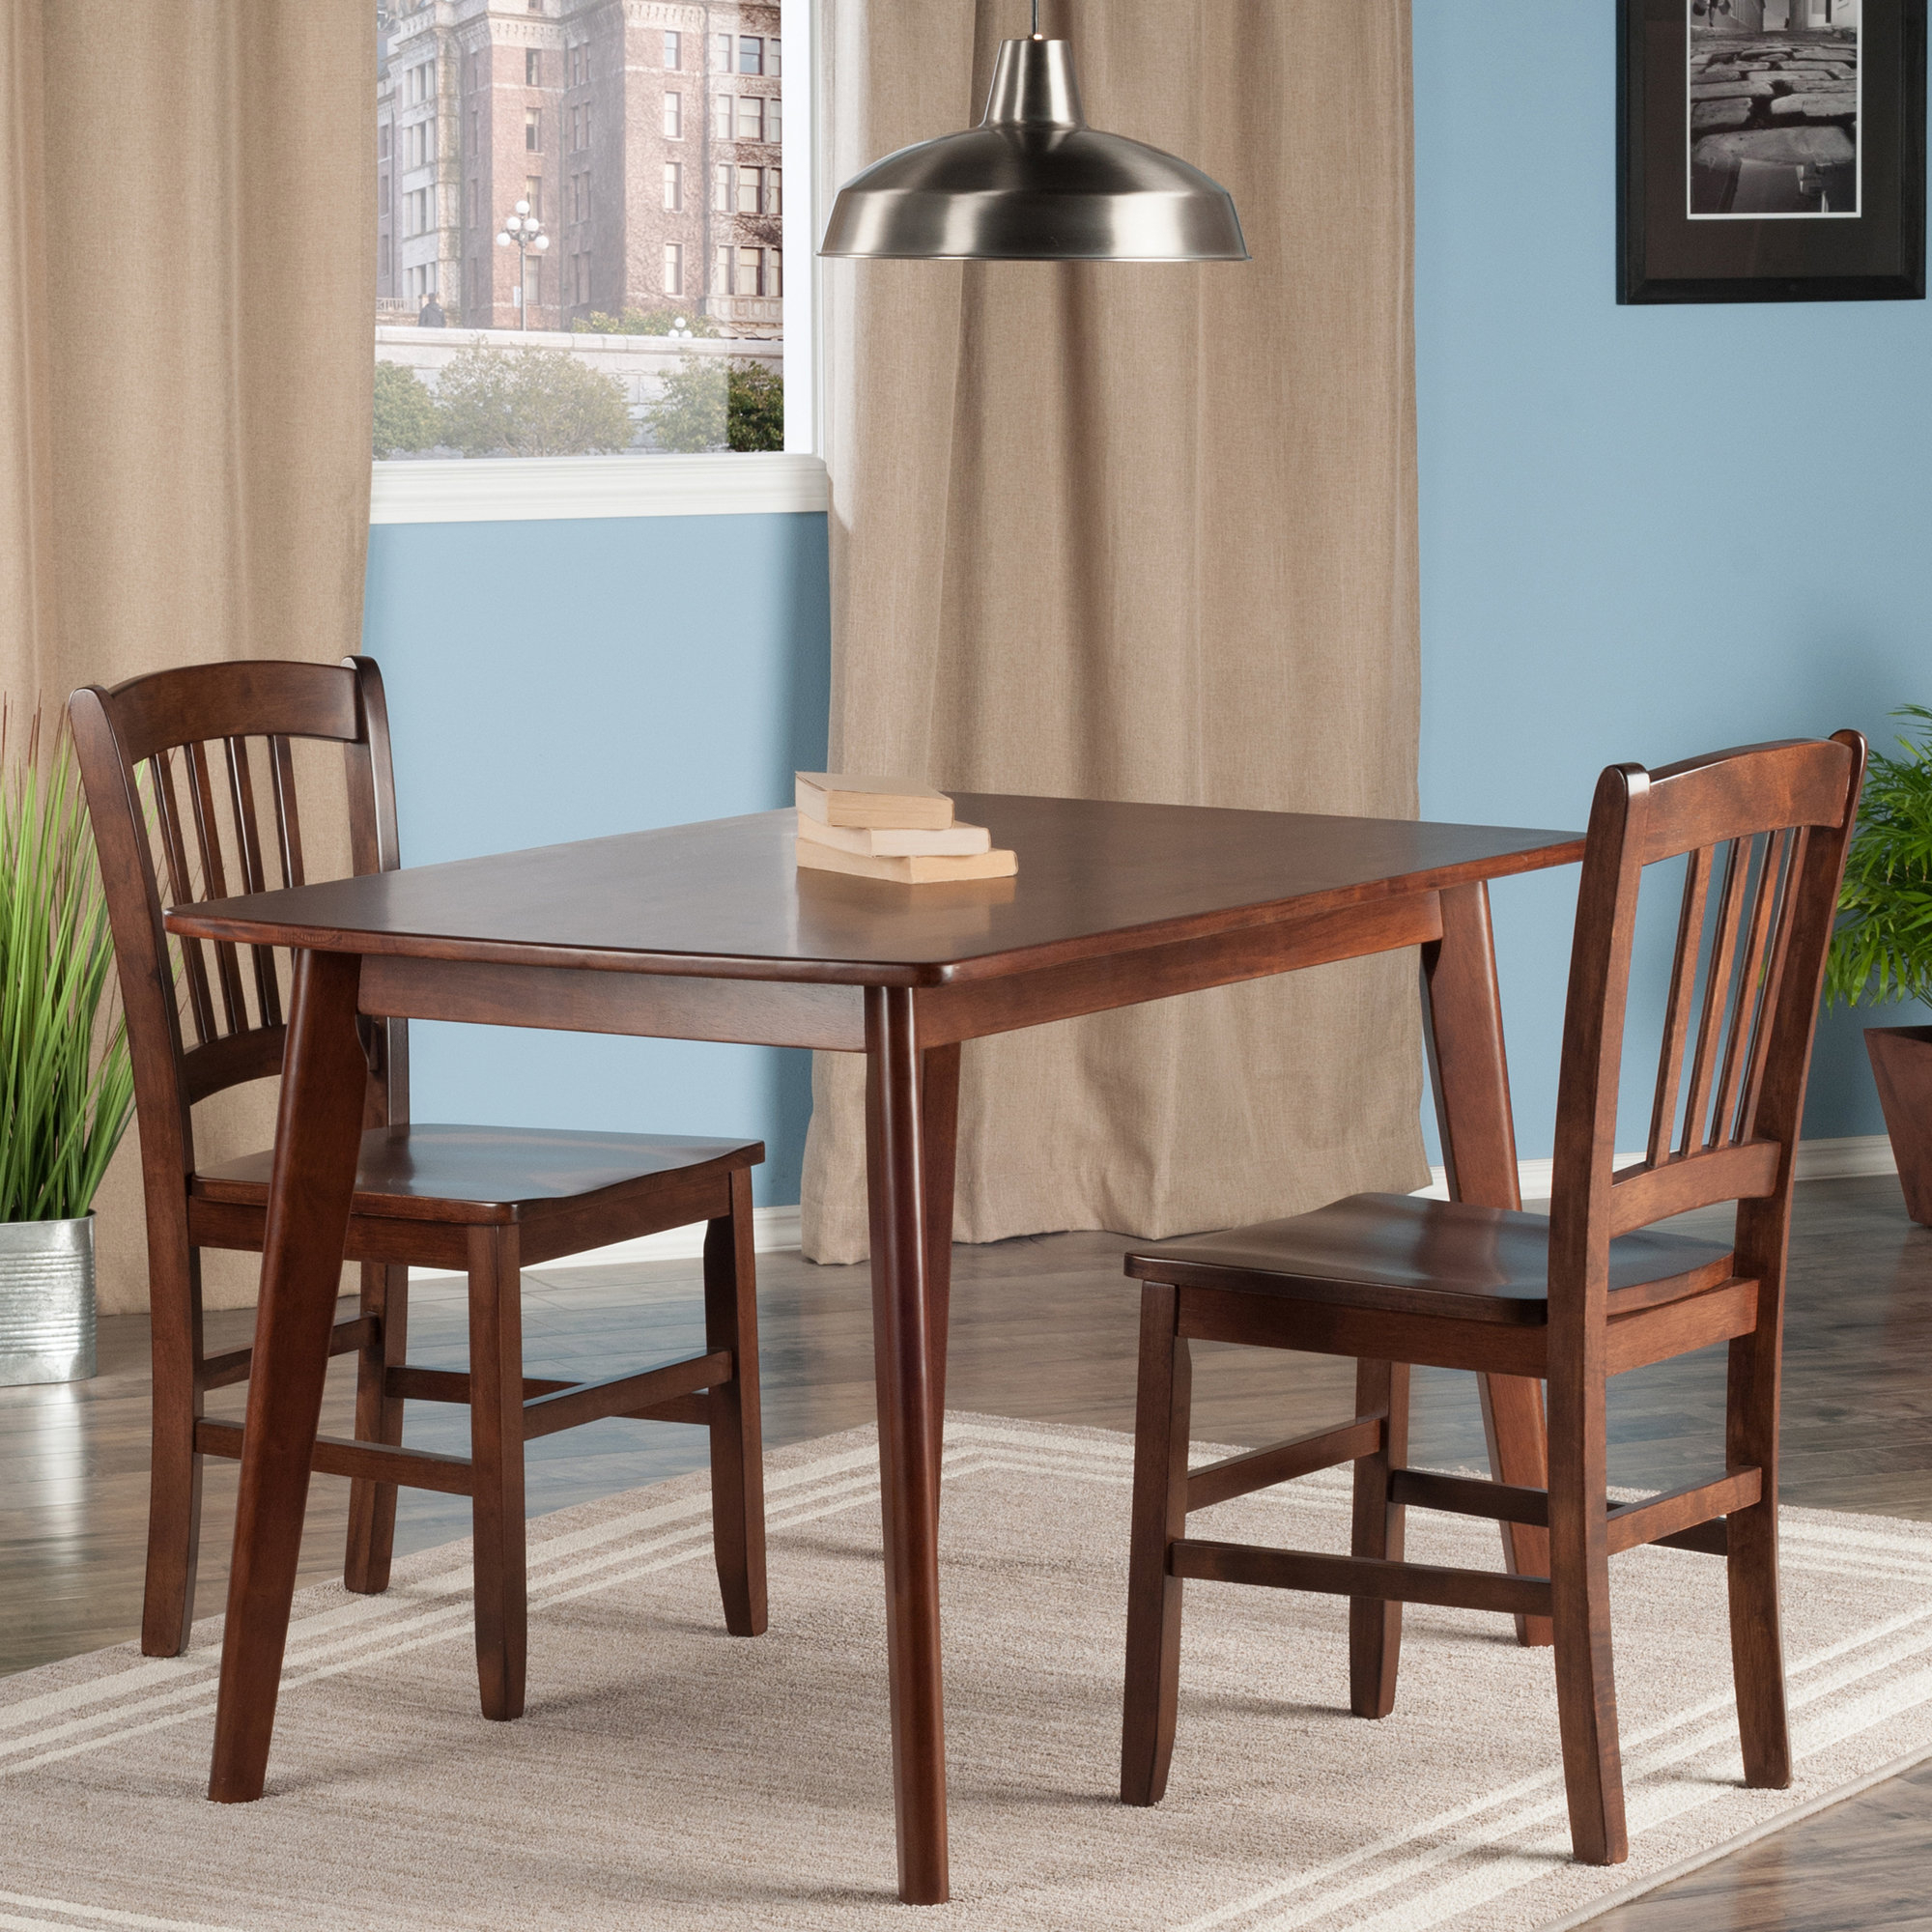 Winston Porter Guynn 3 Piece Solid Wood Dining Set Wnst1156 With 2019 Penelope 3 Piece Counter Height Wood Dining Sets (#20 of 20)